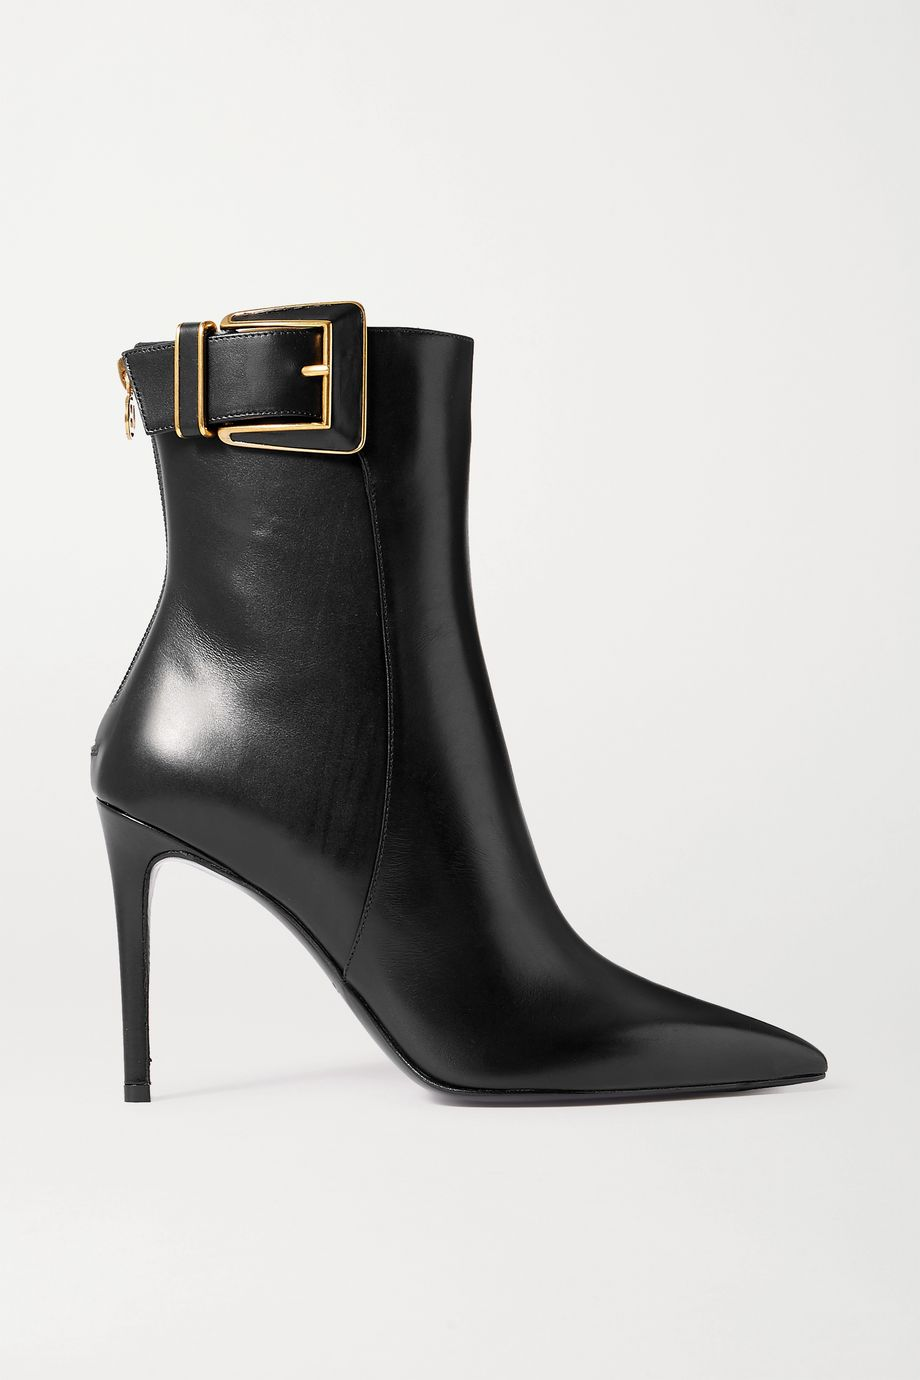 Balmain Payton buckled leather ankle boots